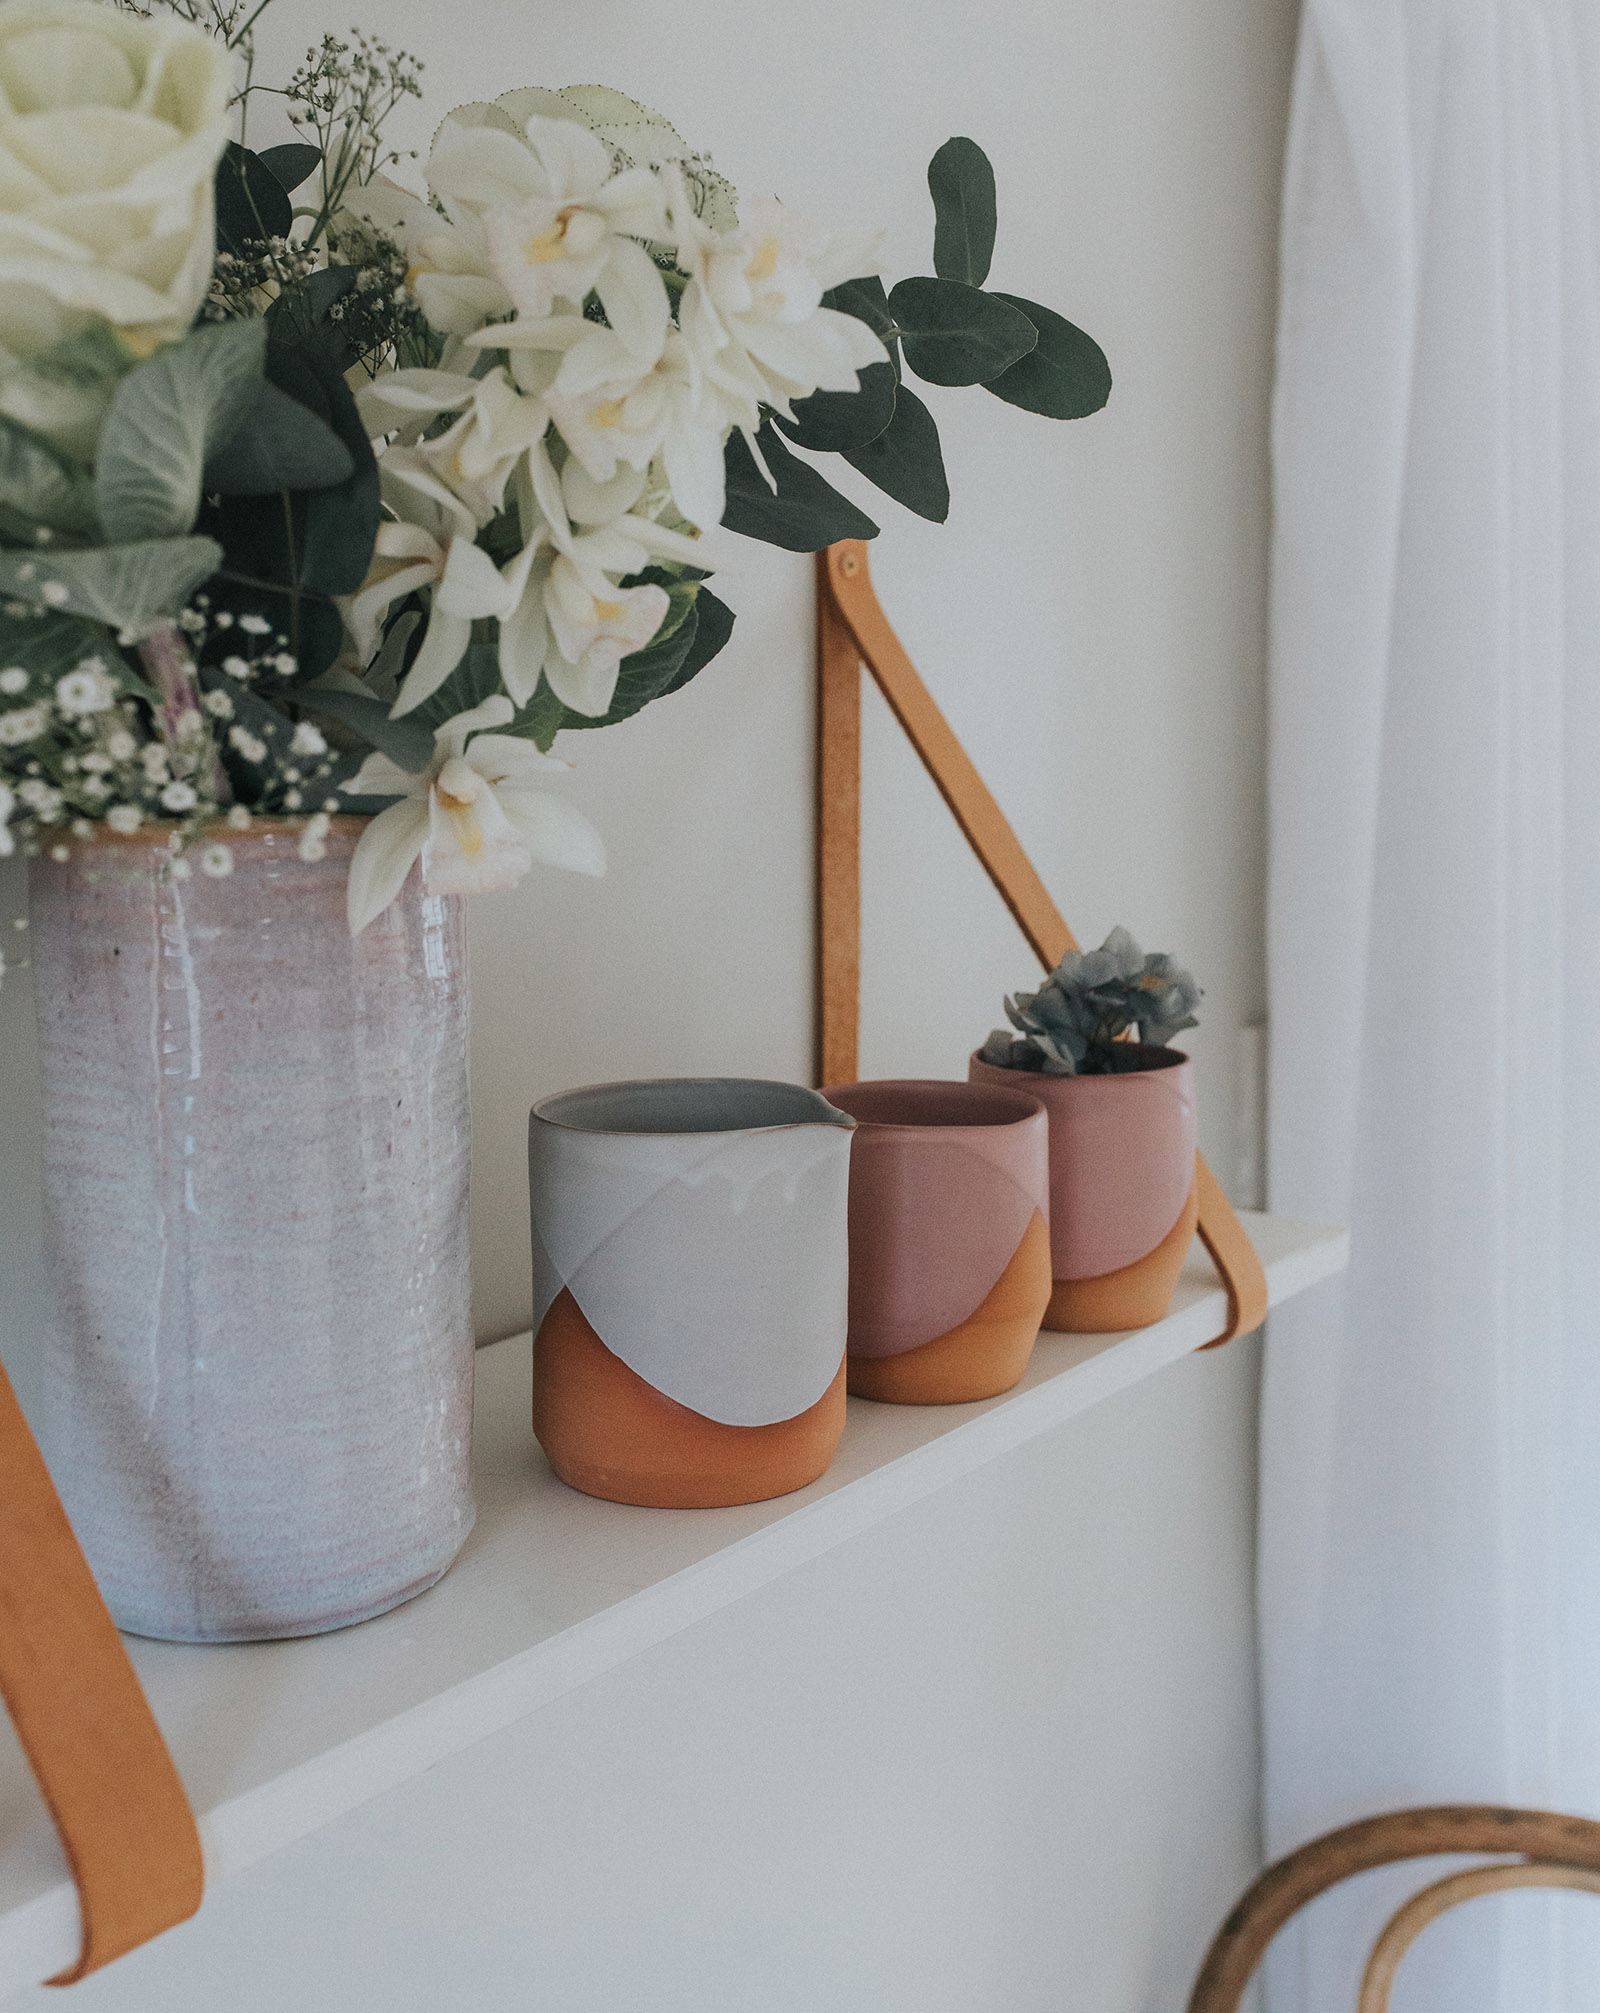 Low_res_2Styled_DIY_Leather_Strap_Shelves_By_Clever_Poppy_Blog.png